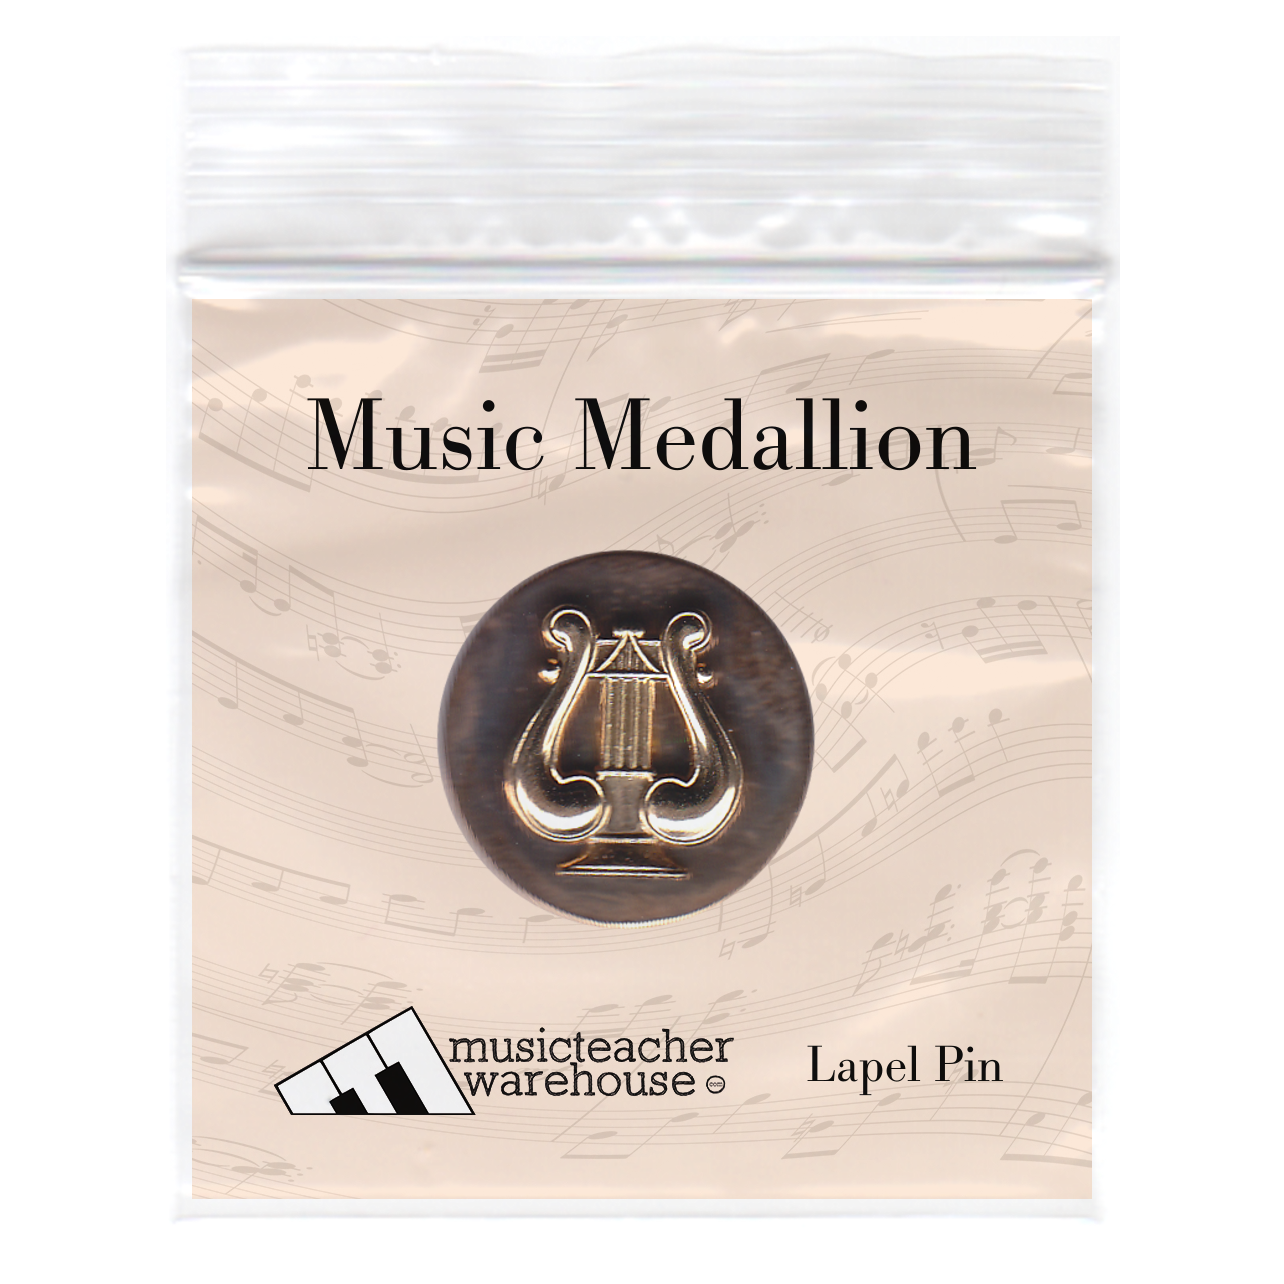 Music Medallion Army Musician